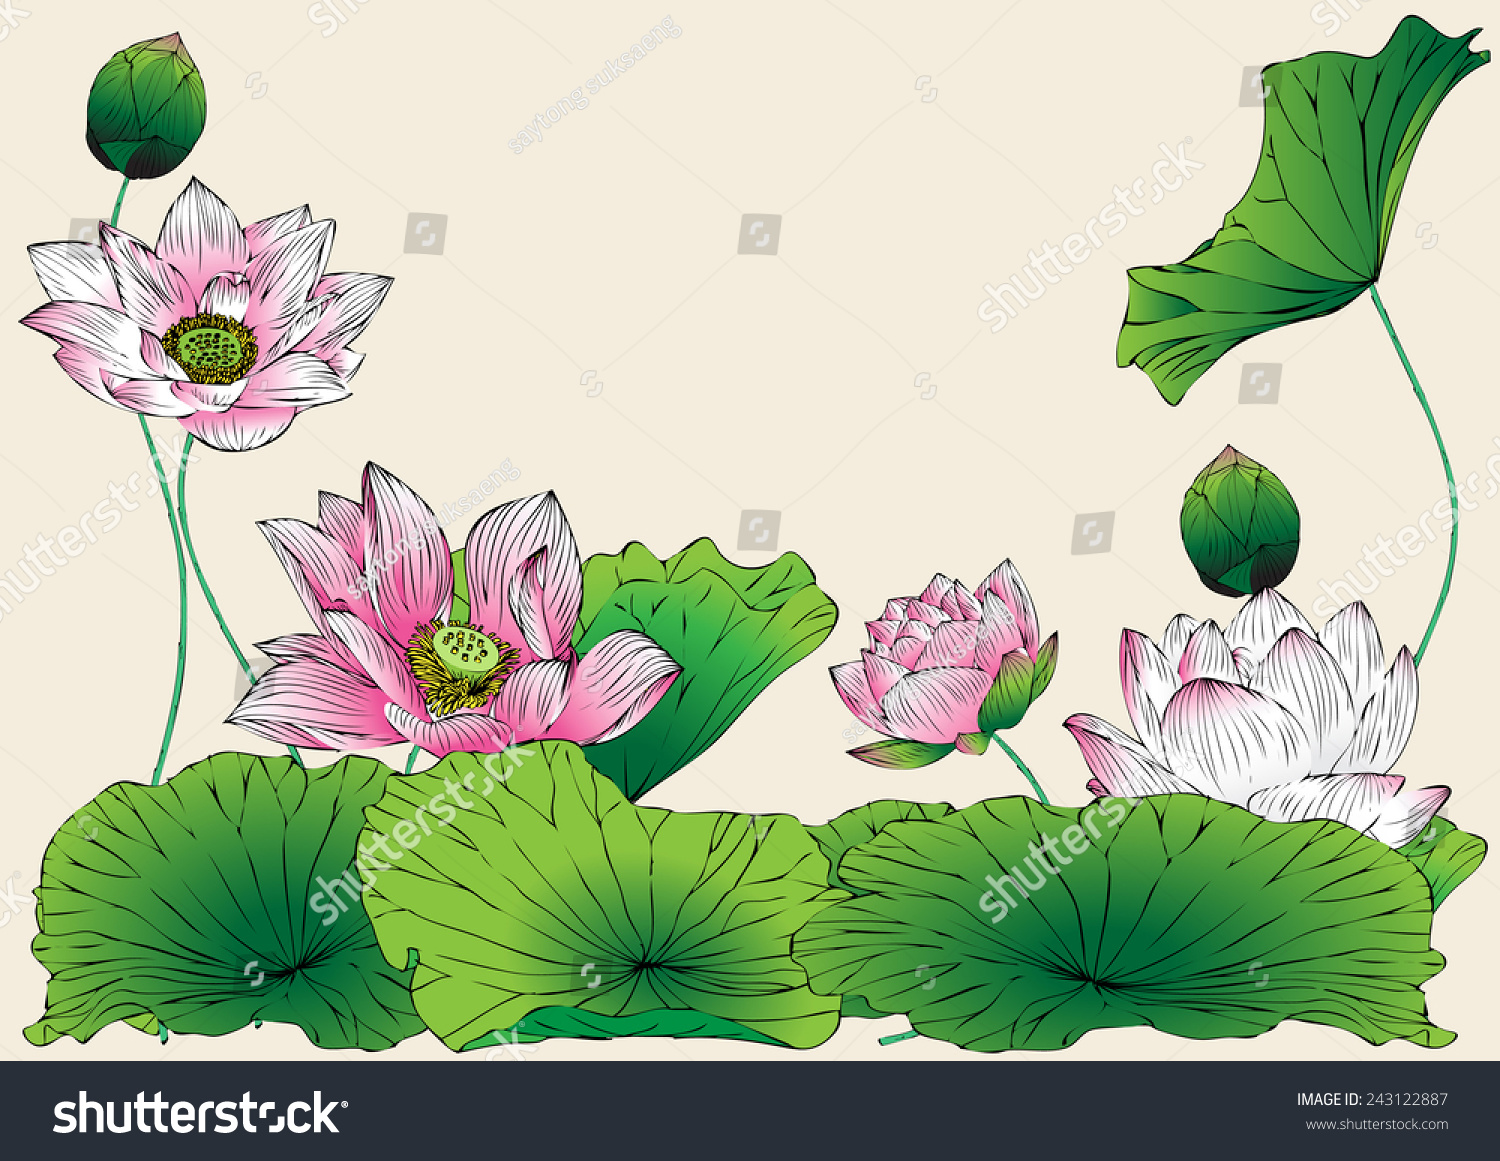 Lotus Vector Drawing For Background And Text Abstract Lotus Symbols Illustrat